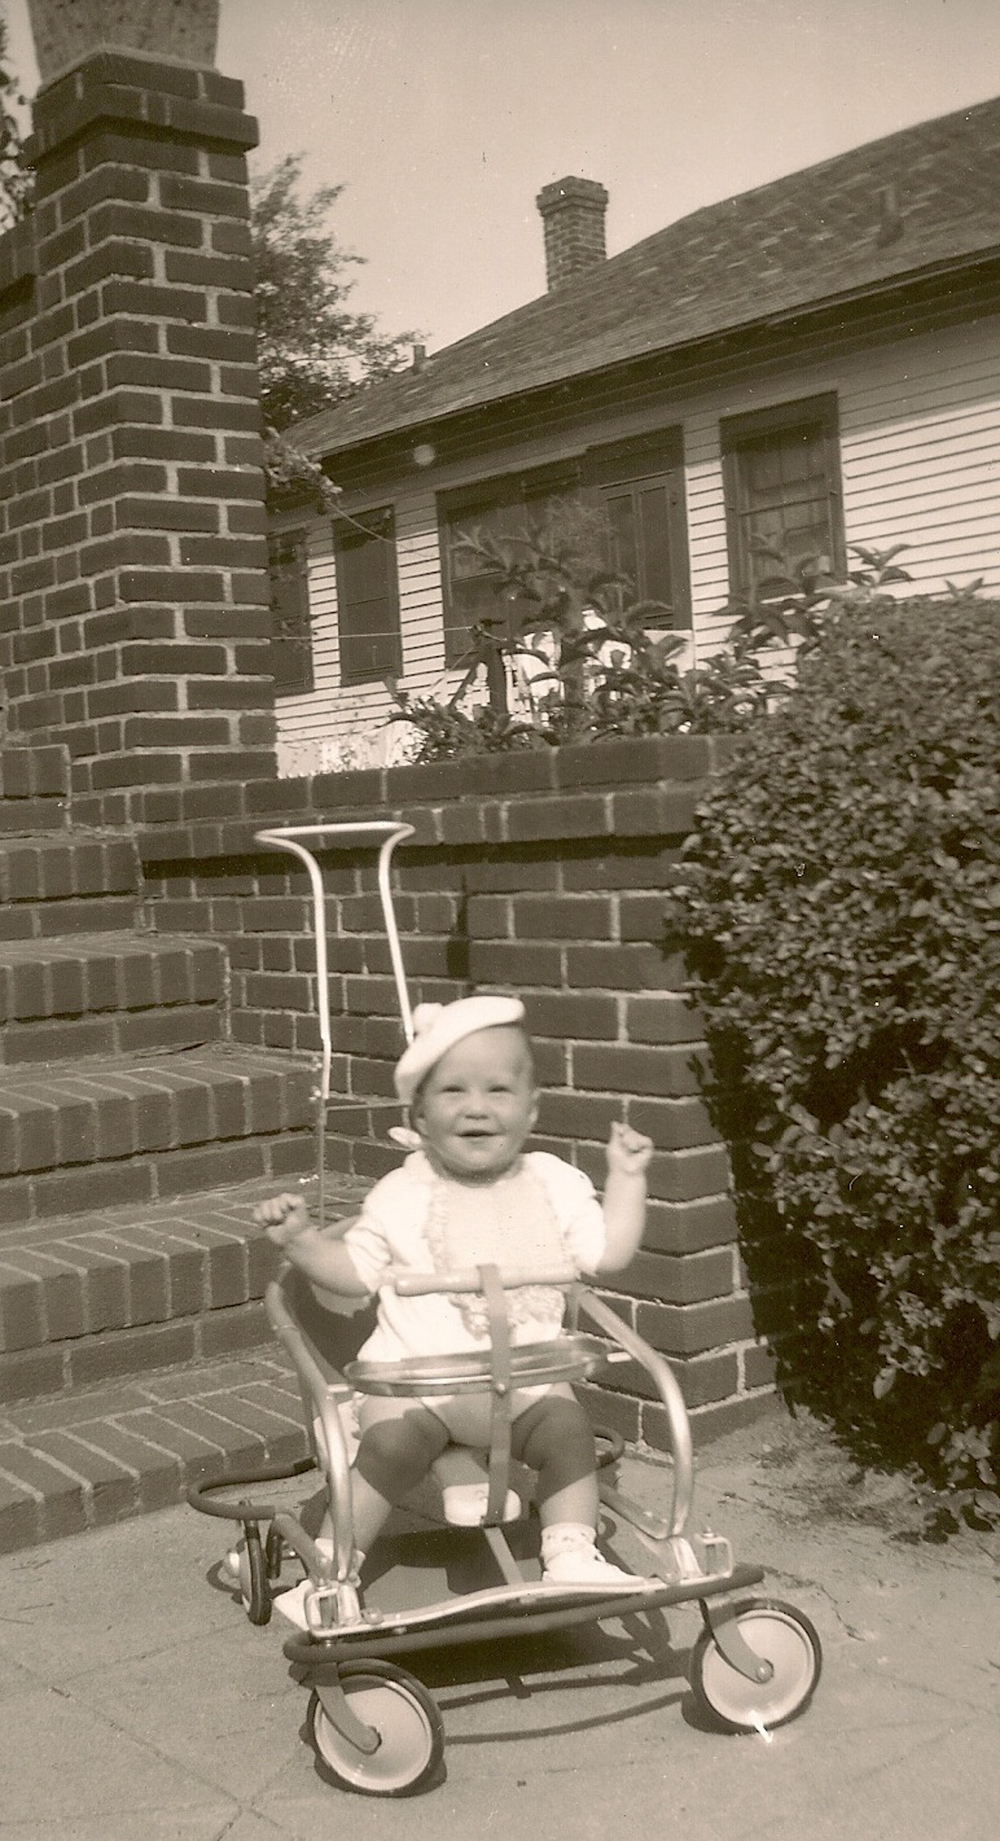 My Brother Mitchell In front of my house Apx 1949